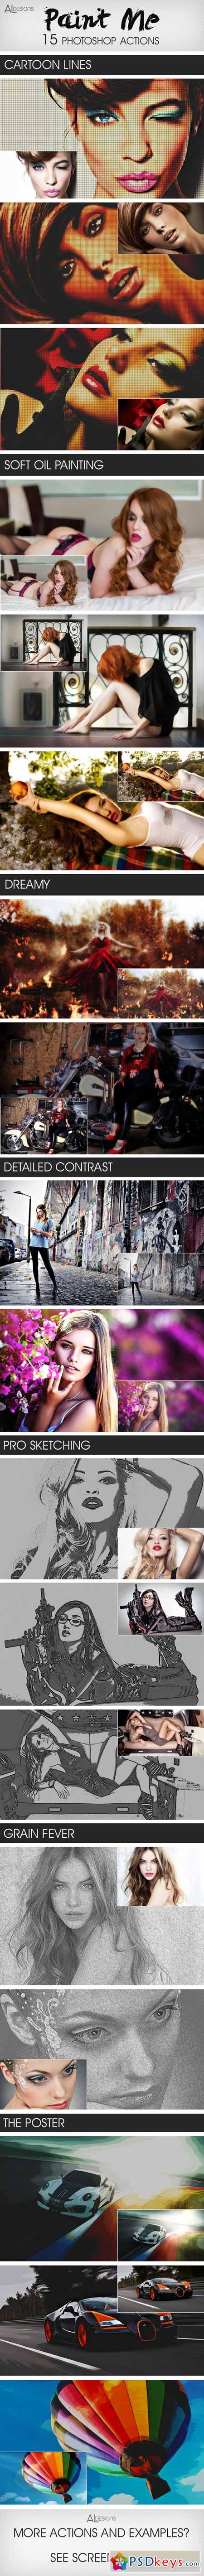 Paint Me Photoshop Actions 11647619